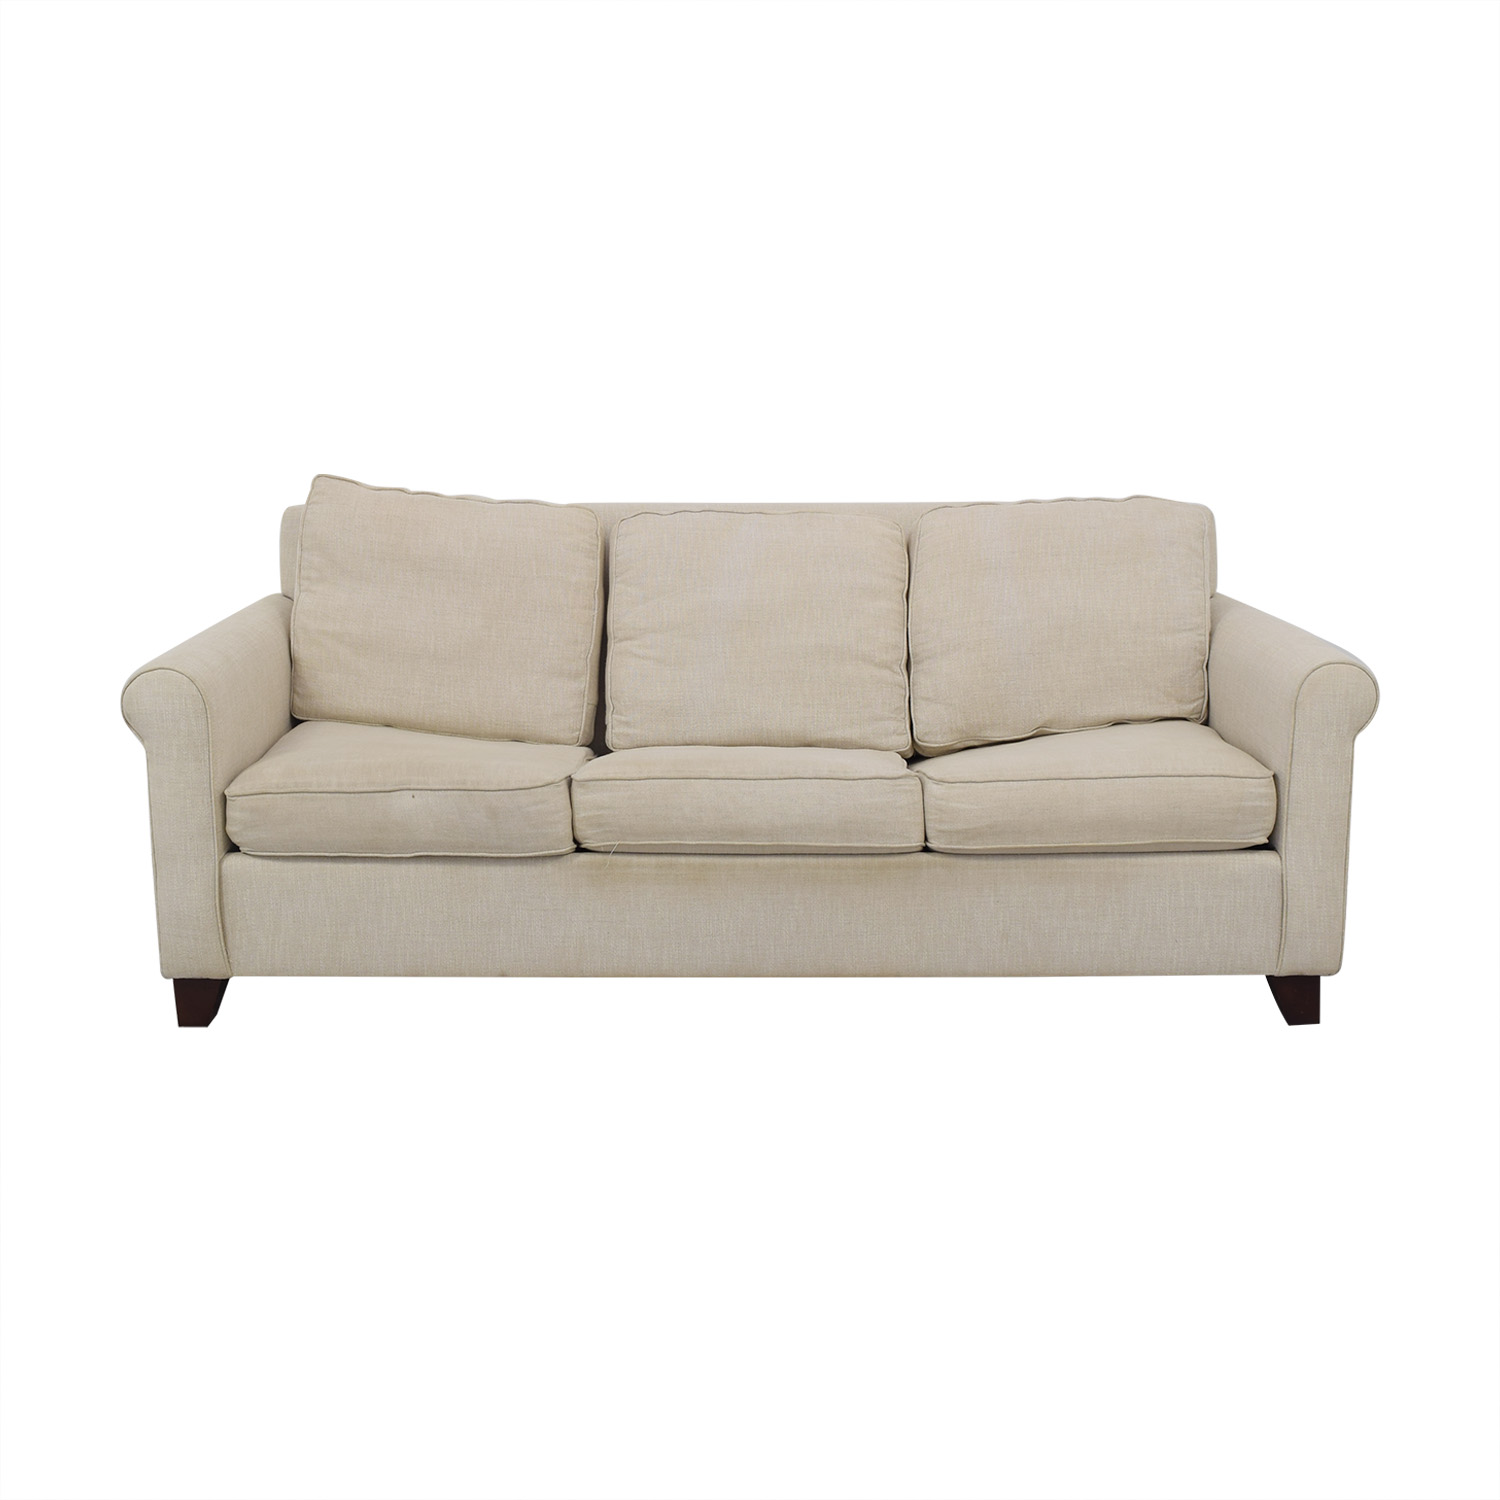 West Elm West Elm Cameron Roll Arm Upholstered Sleeper Sofa pa